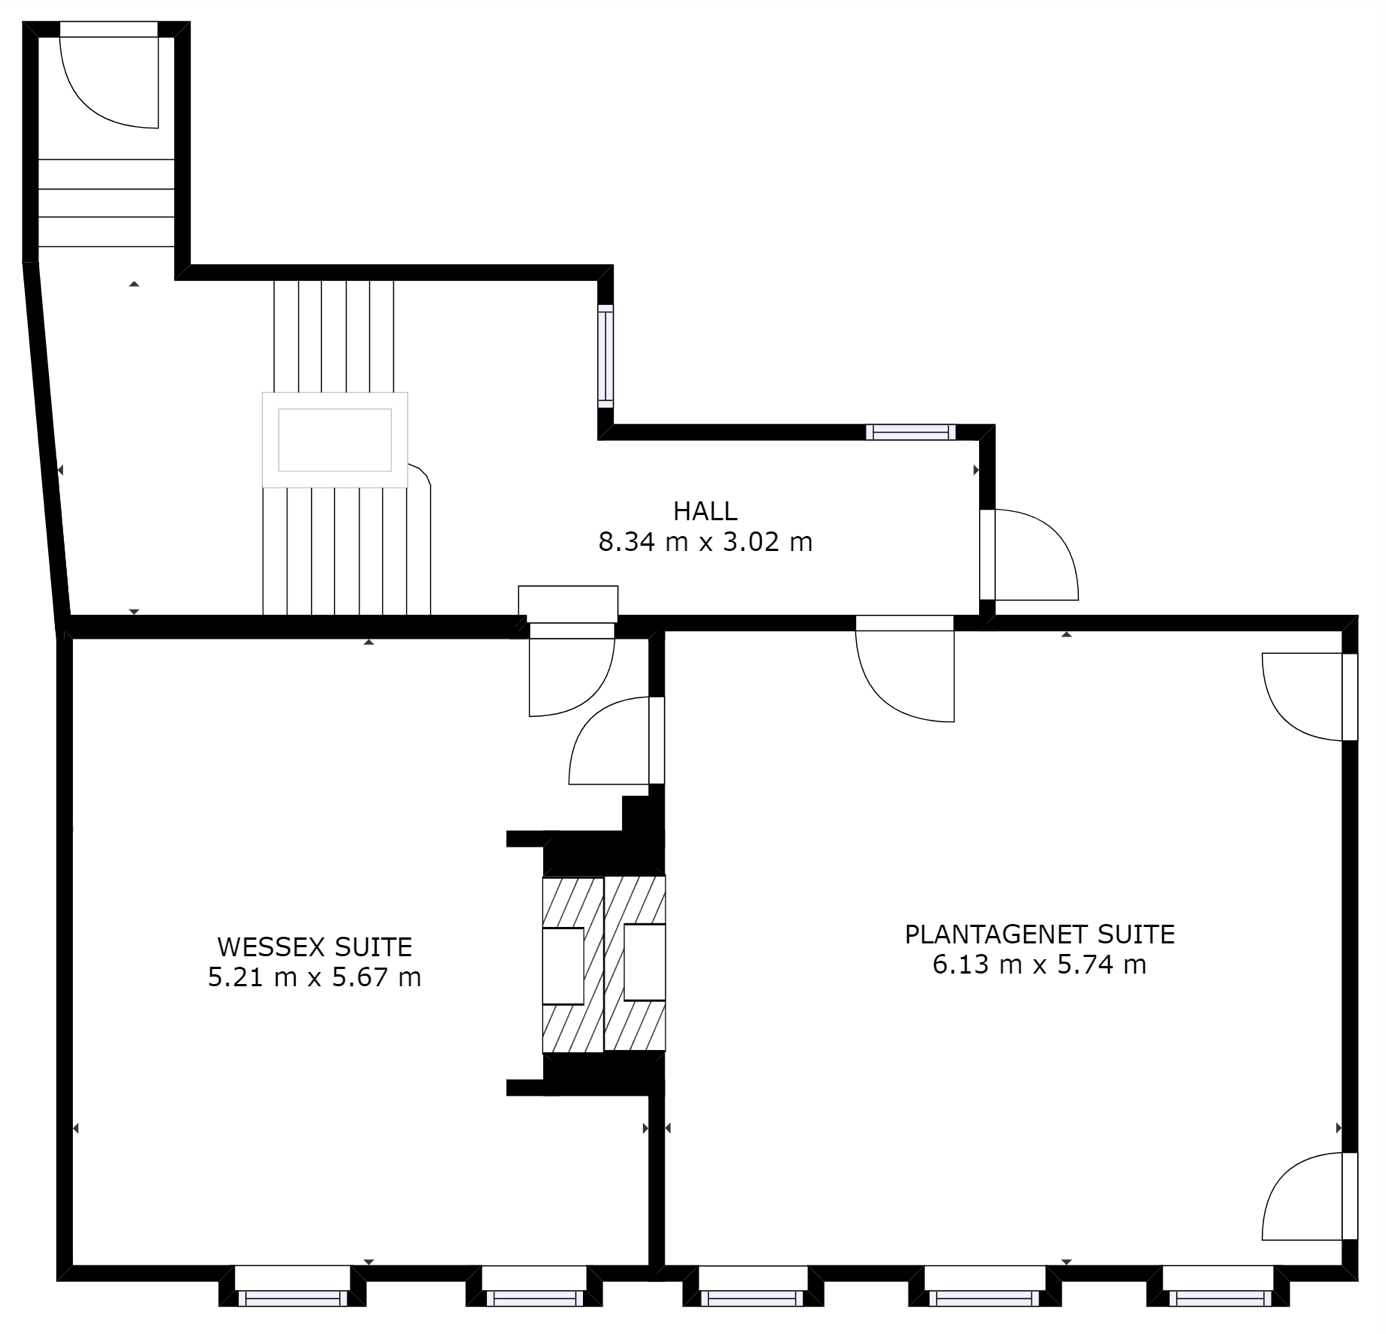 First floor layout of offices at Kings Head House, Beaconsfield